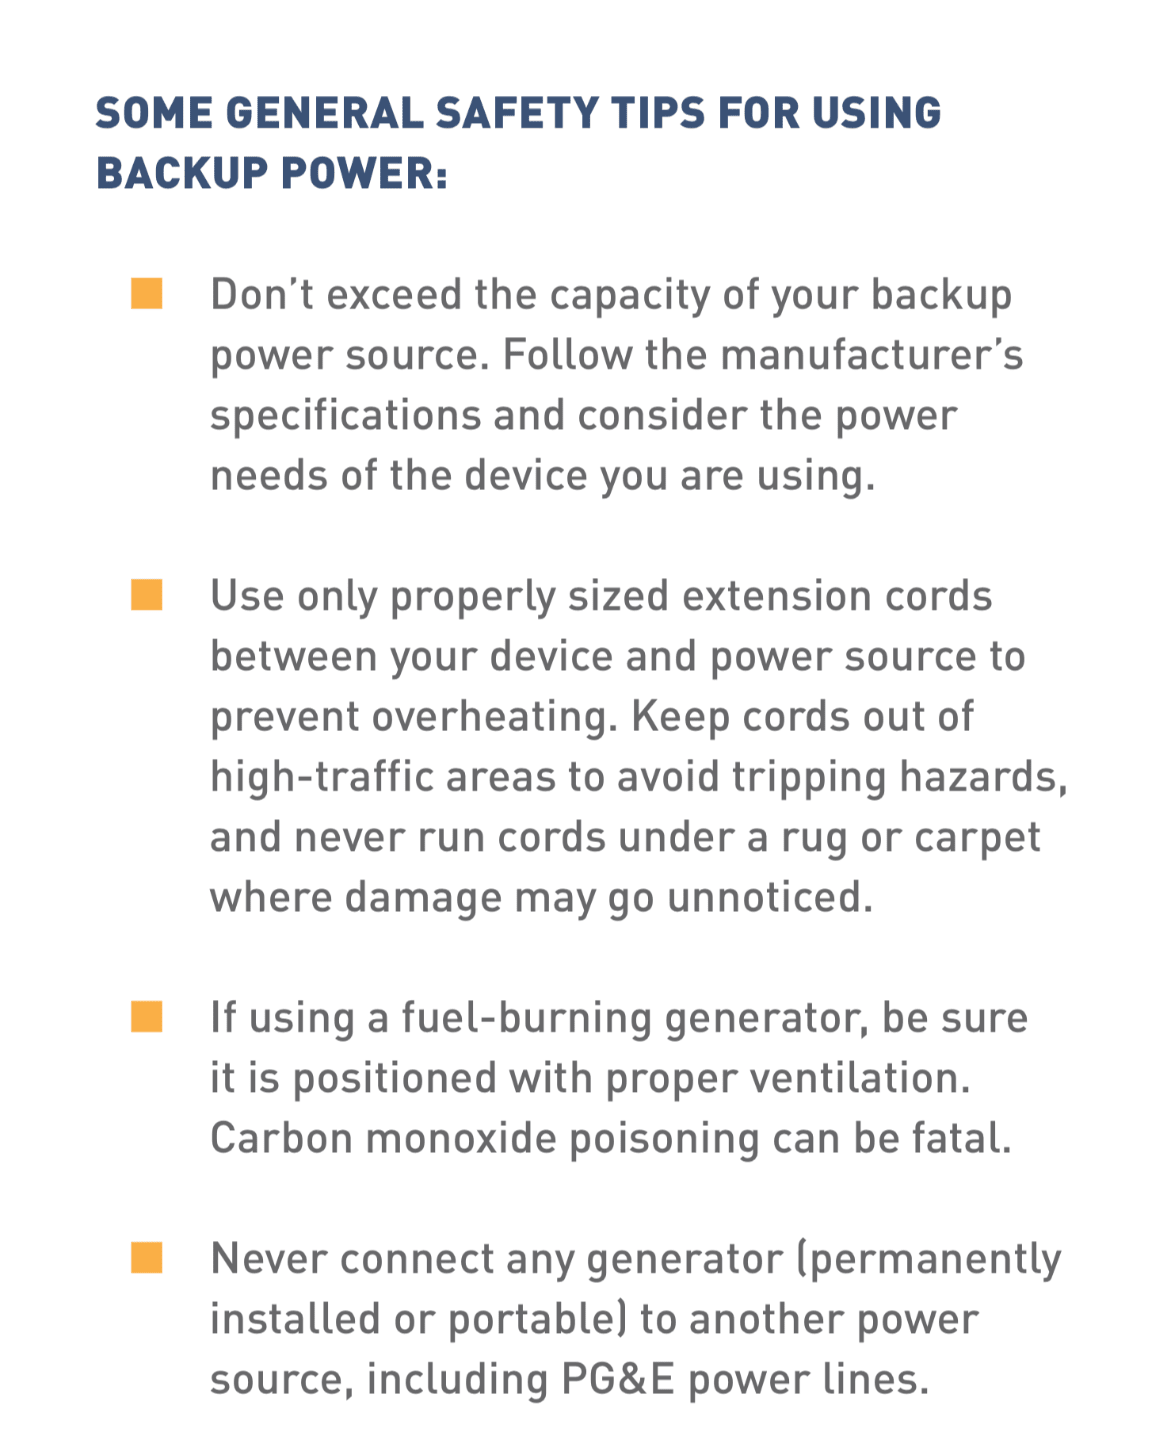 Text block with general safety tips for using backup power